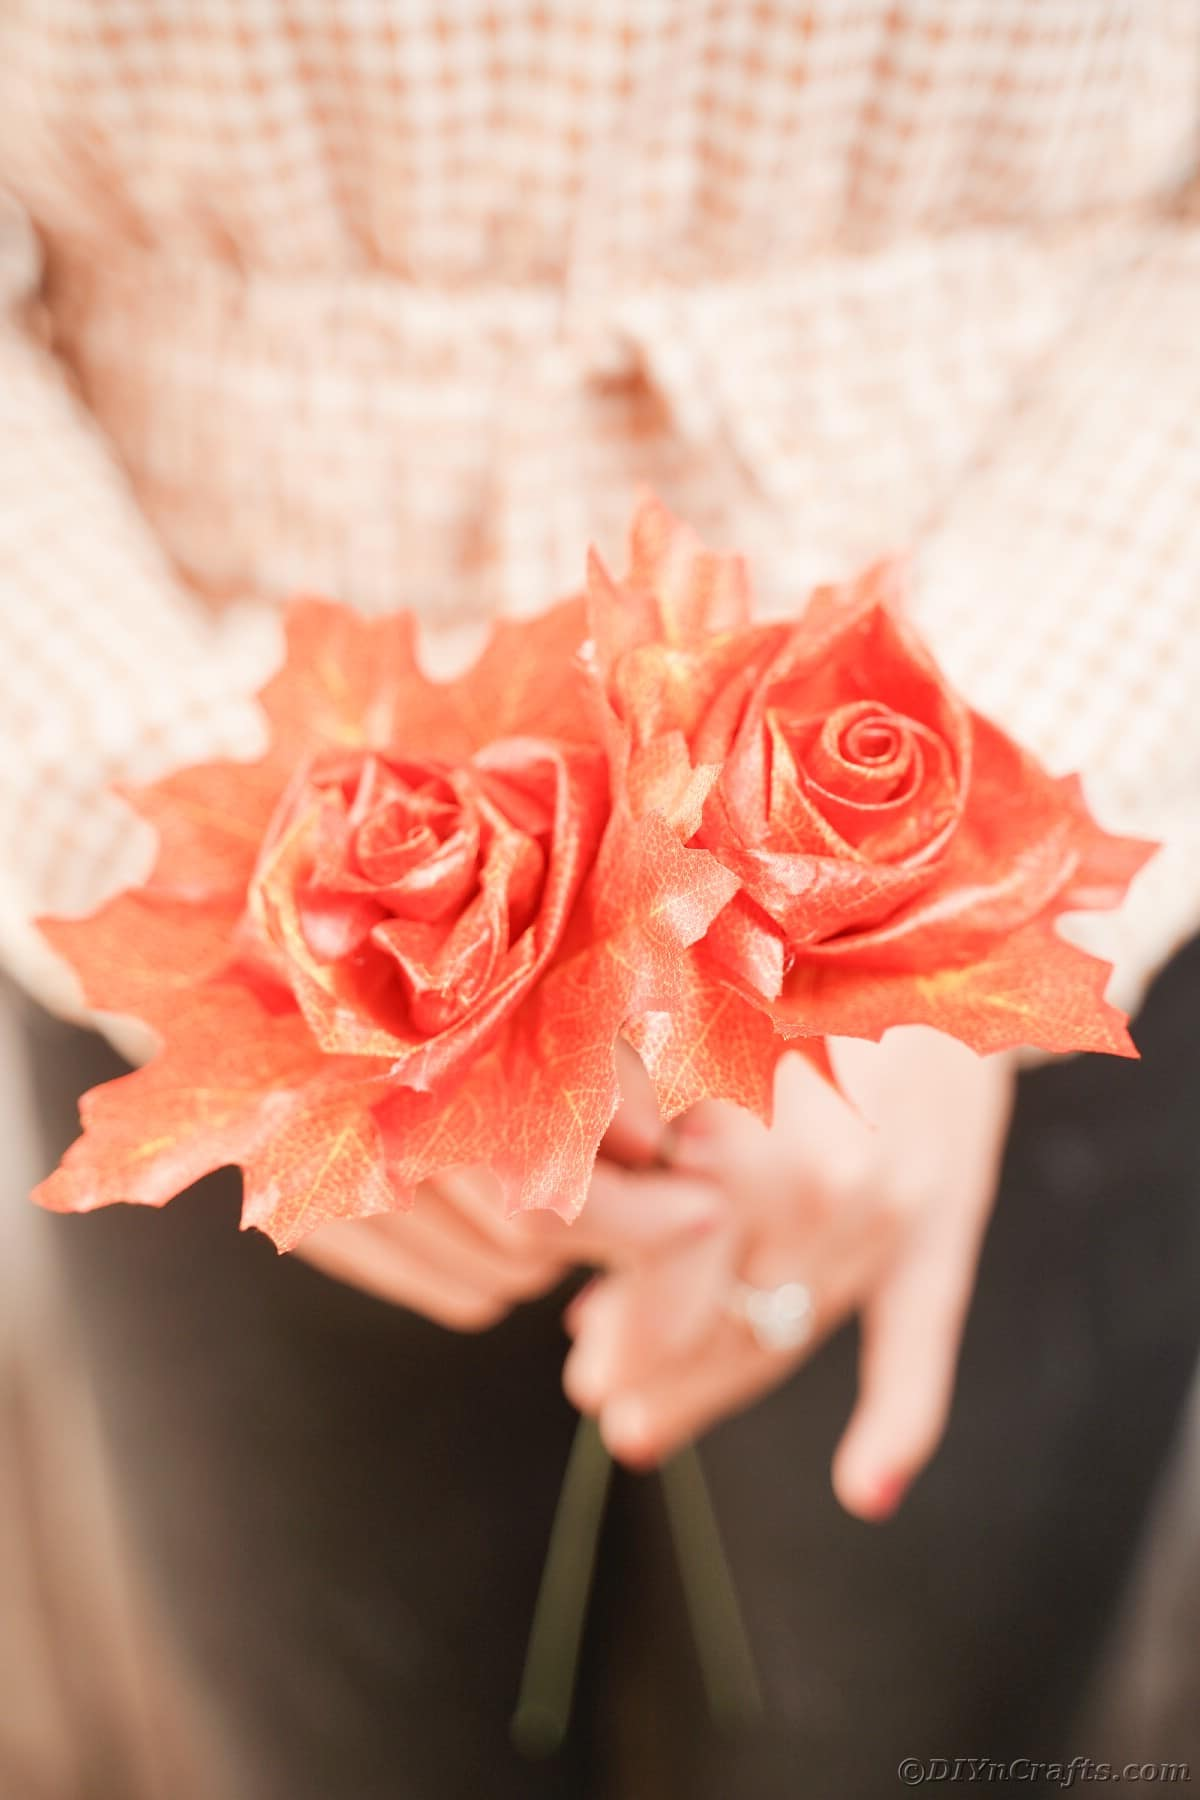 Woman in black pants holding two fake roses